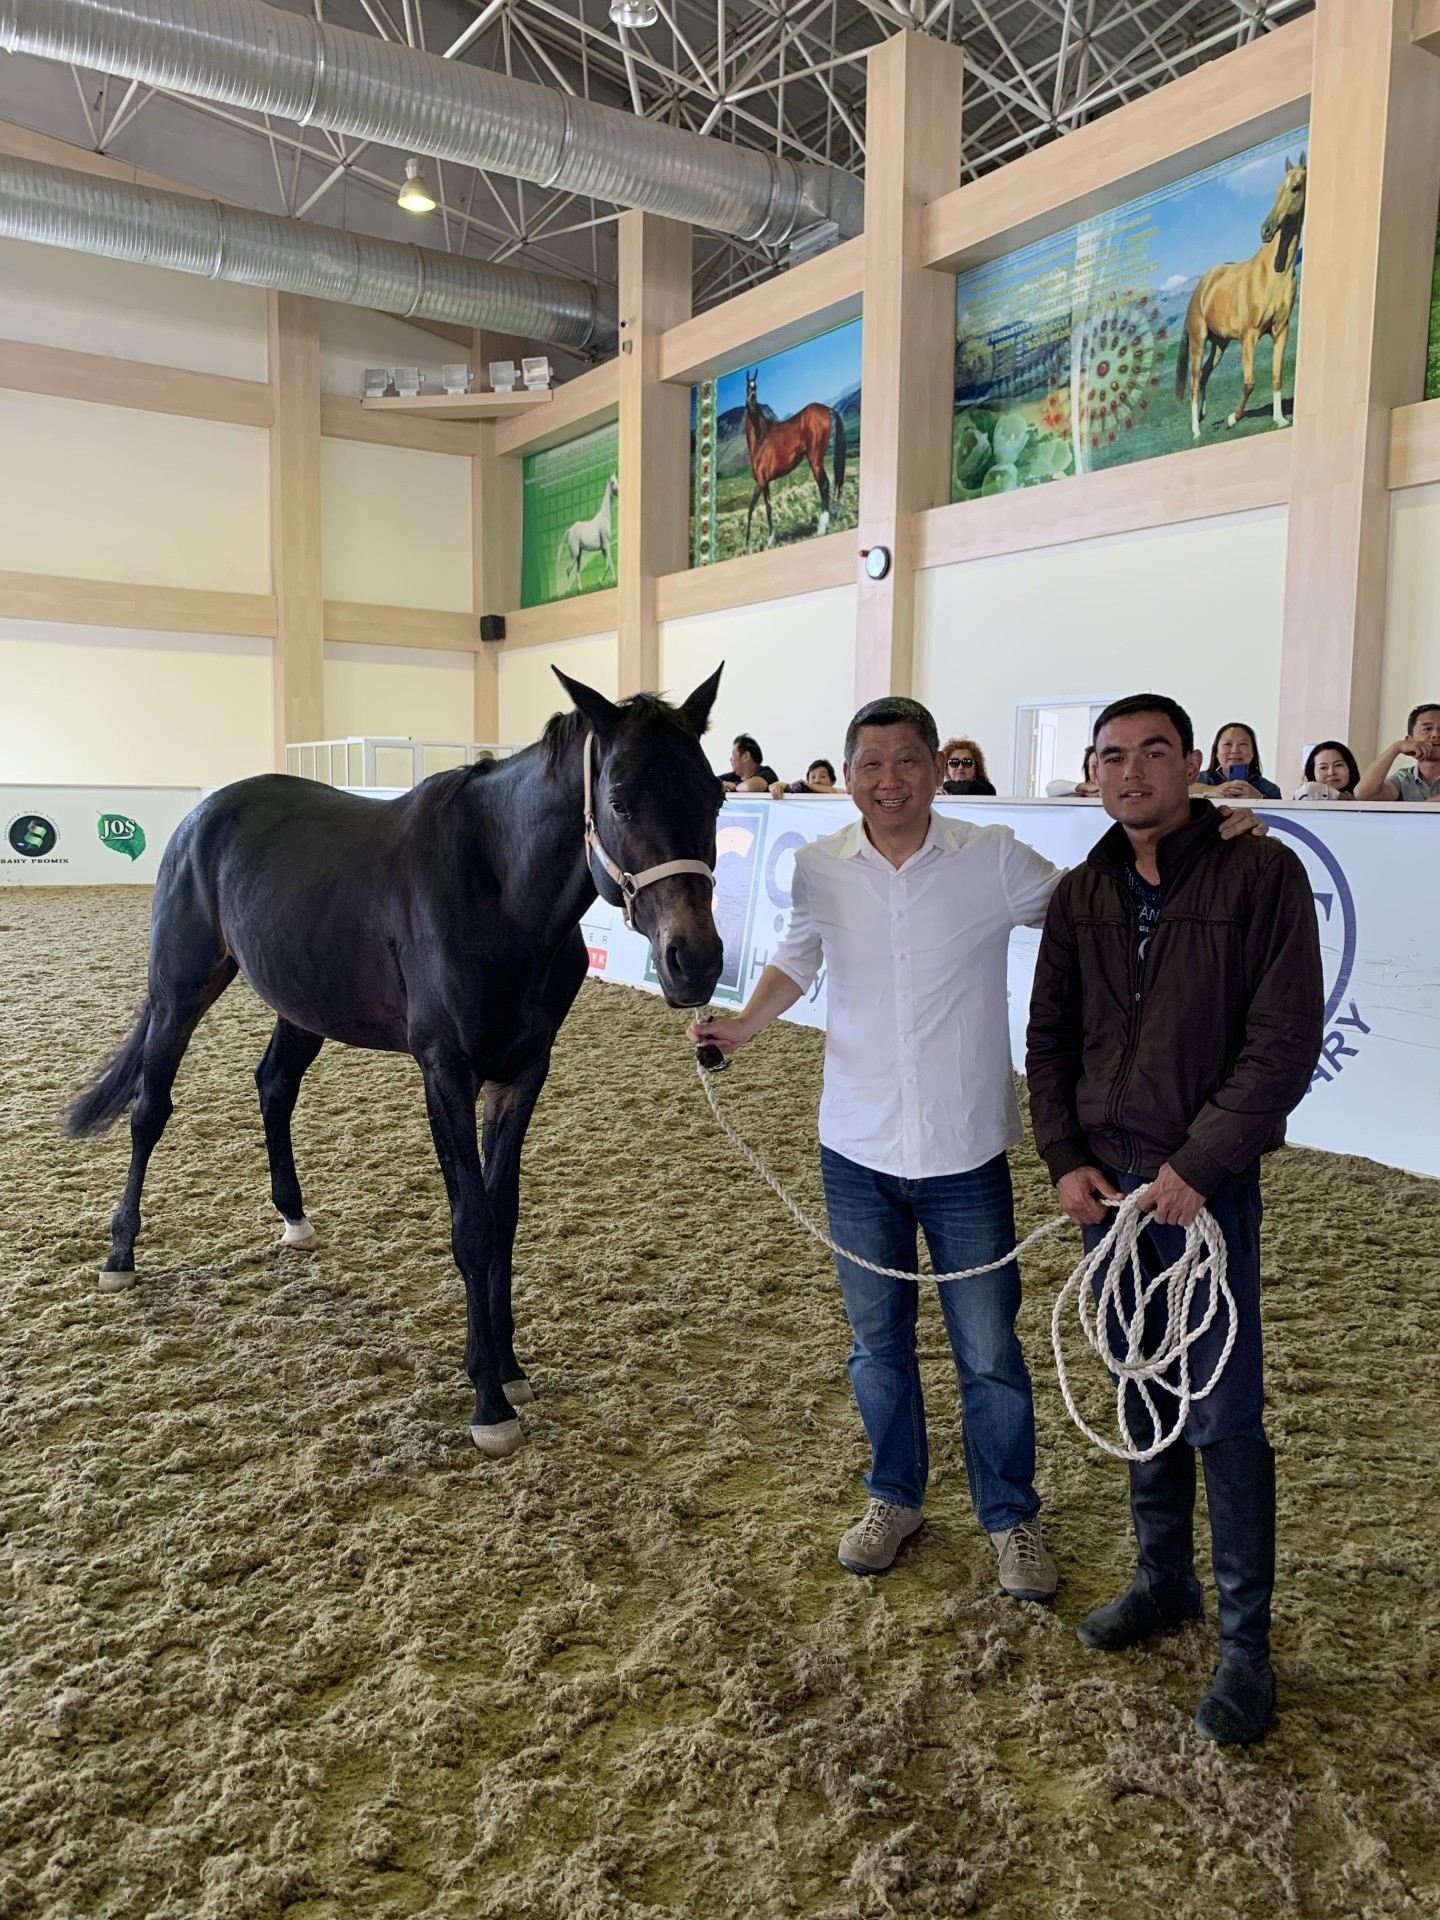 There are only about 3,000 Ferghana horses left in the world.